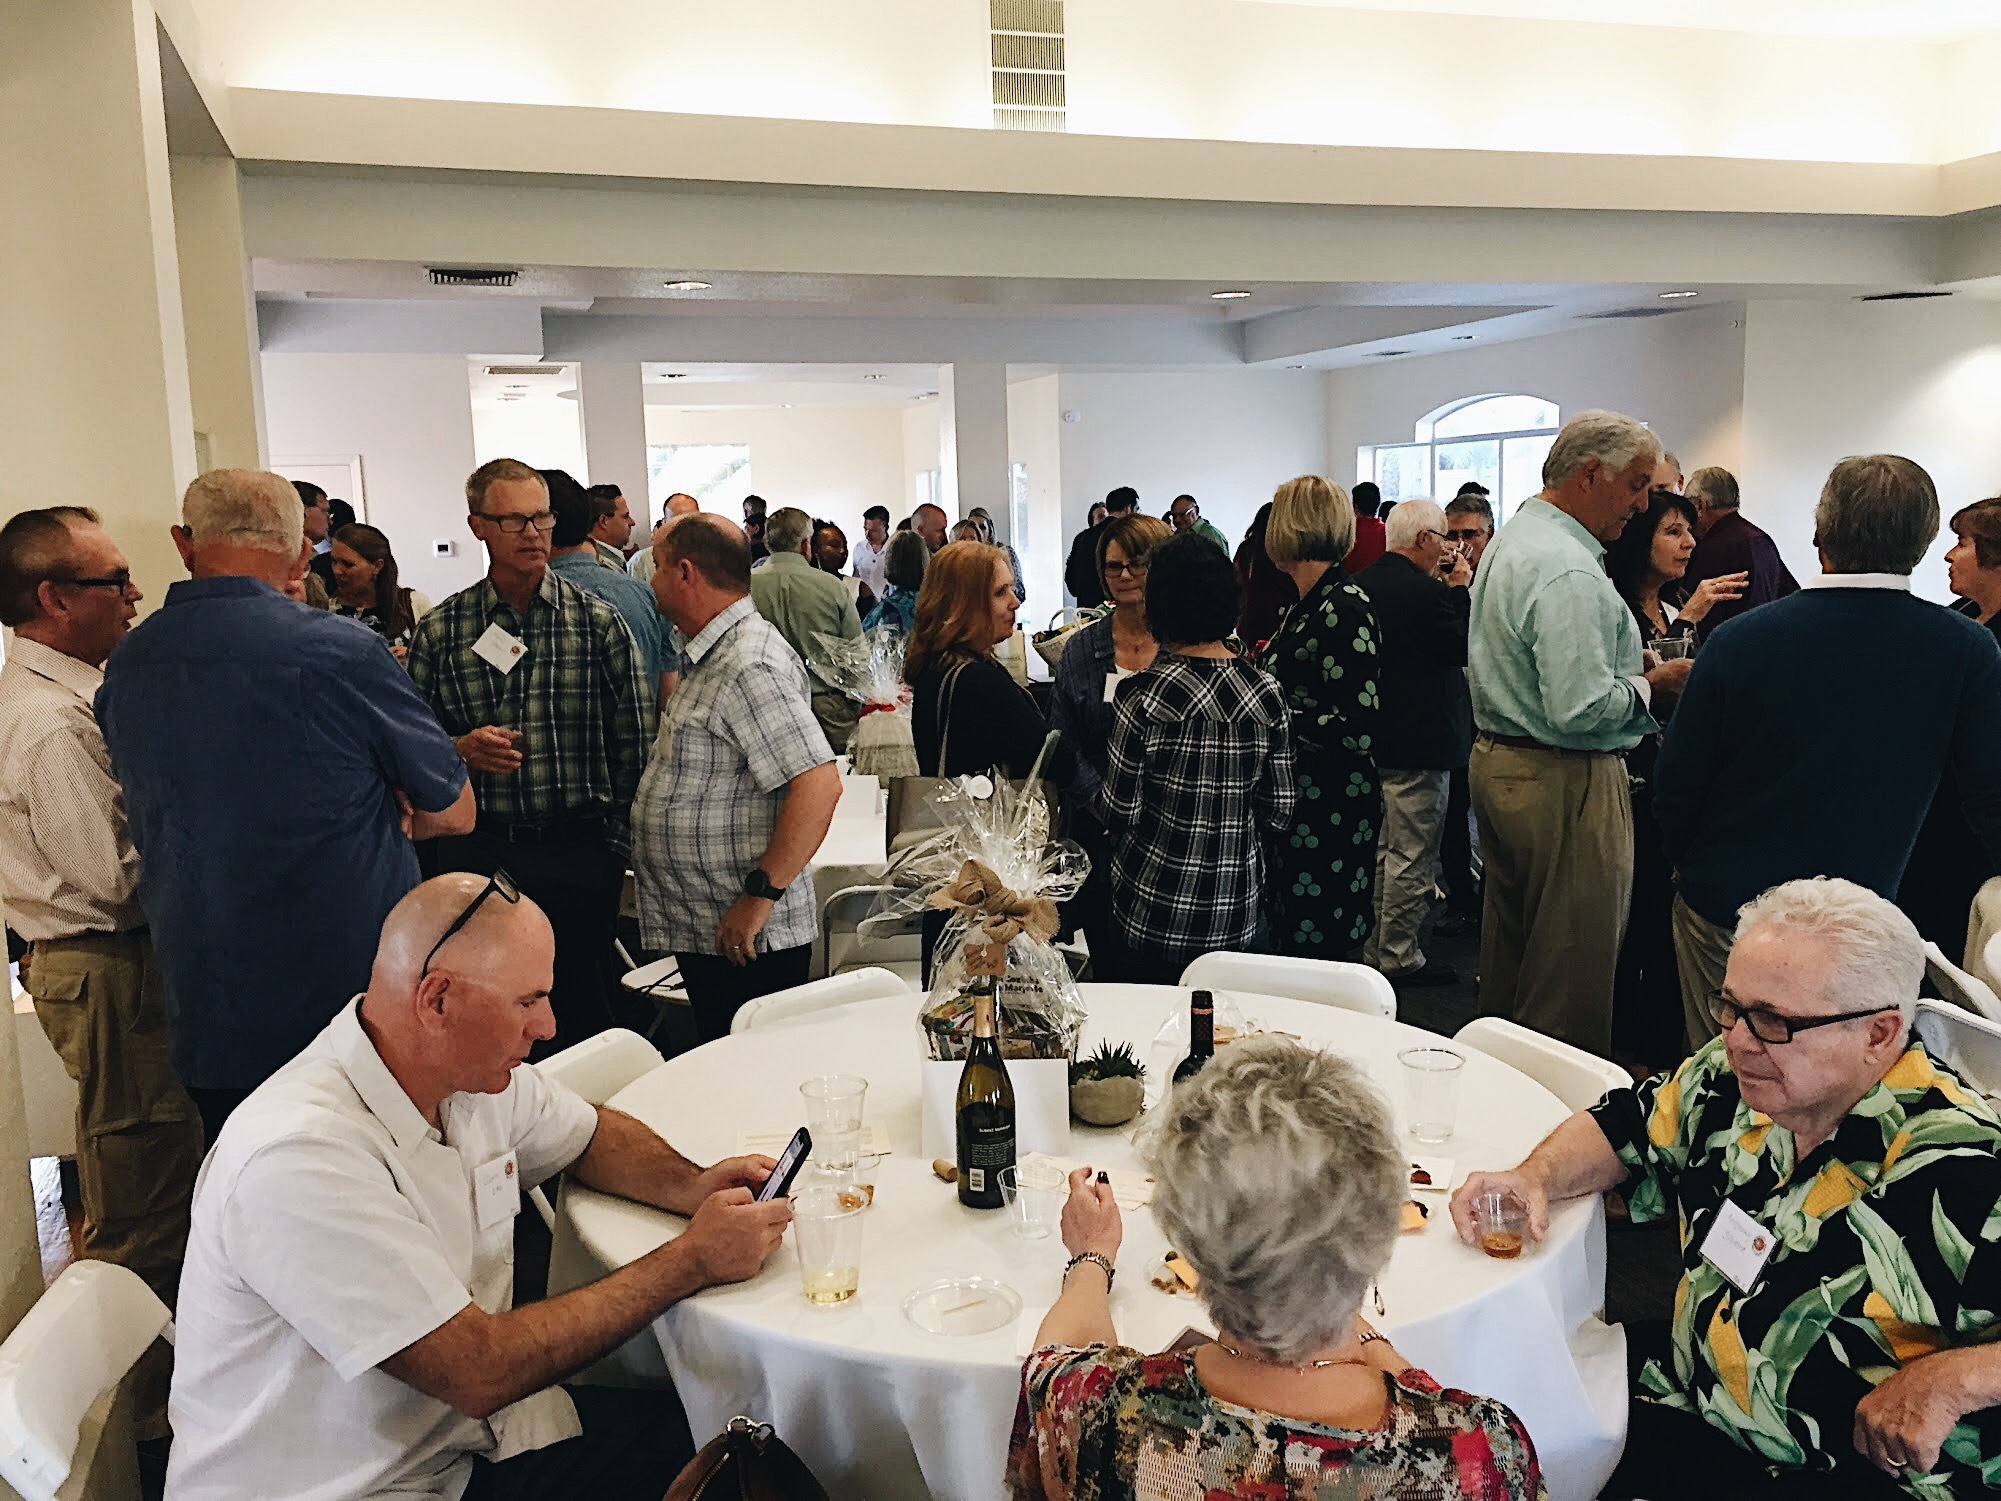 Guests had the opportunity to mingle while enjoying Portuguese wine and other traditional delicacies.